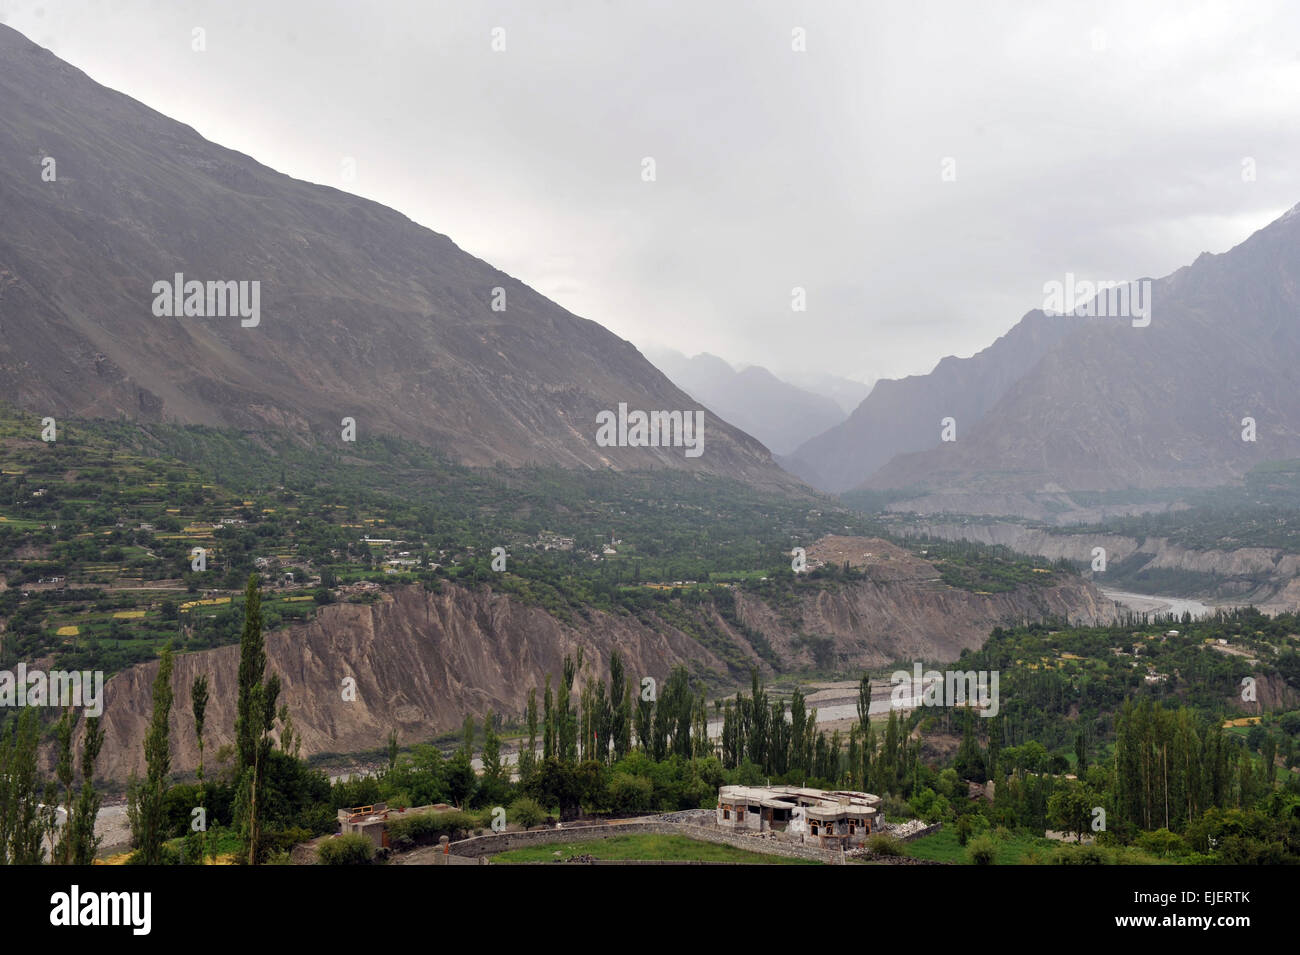 Hunza valley as viewed from Karimabad. Diran is the mountain to the left and Rakaposhi is to the right. Pakistan, - Stock Image